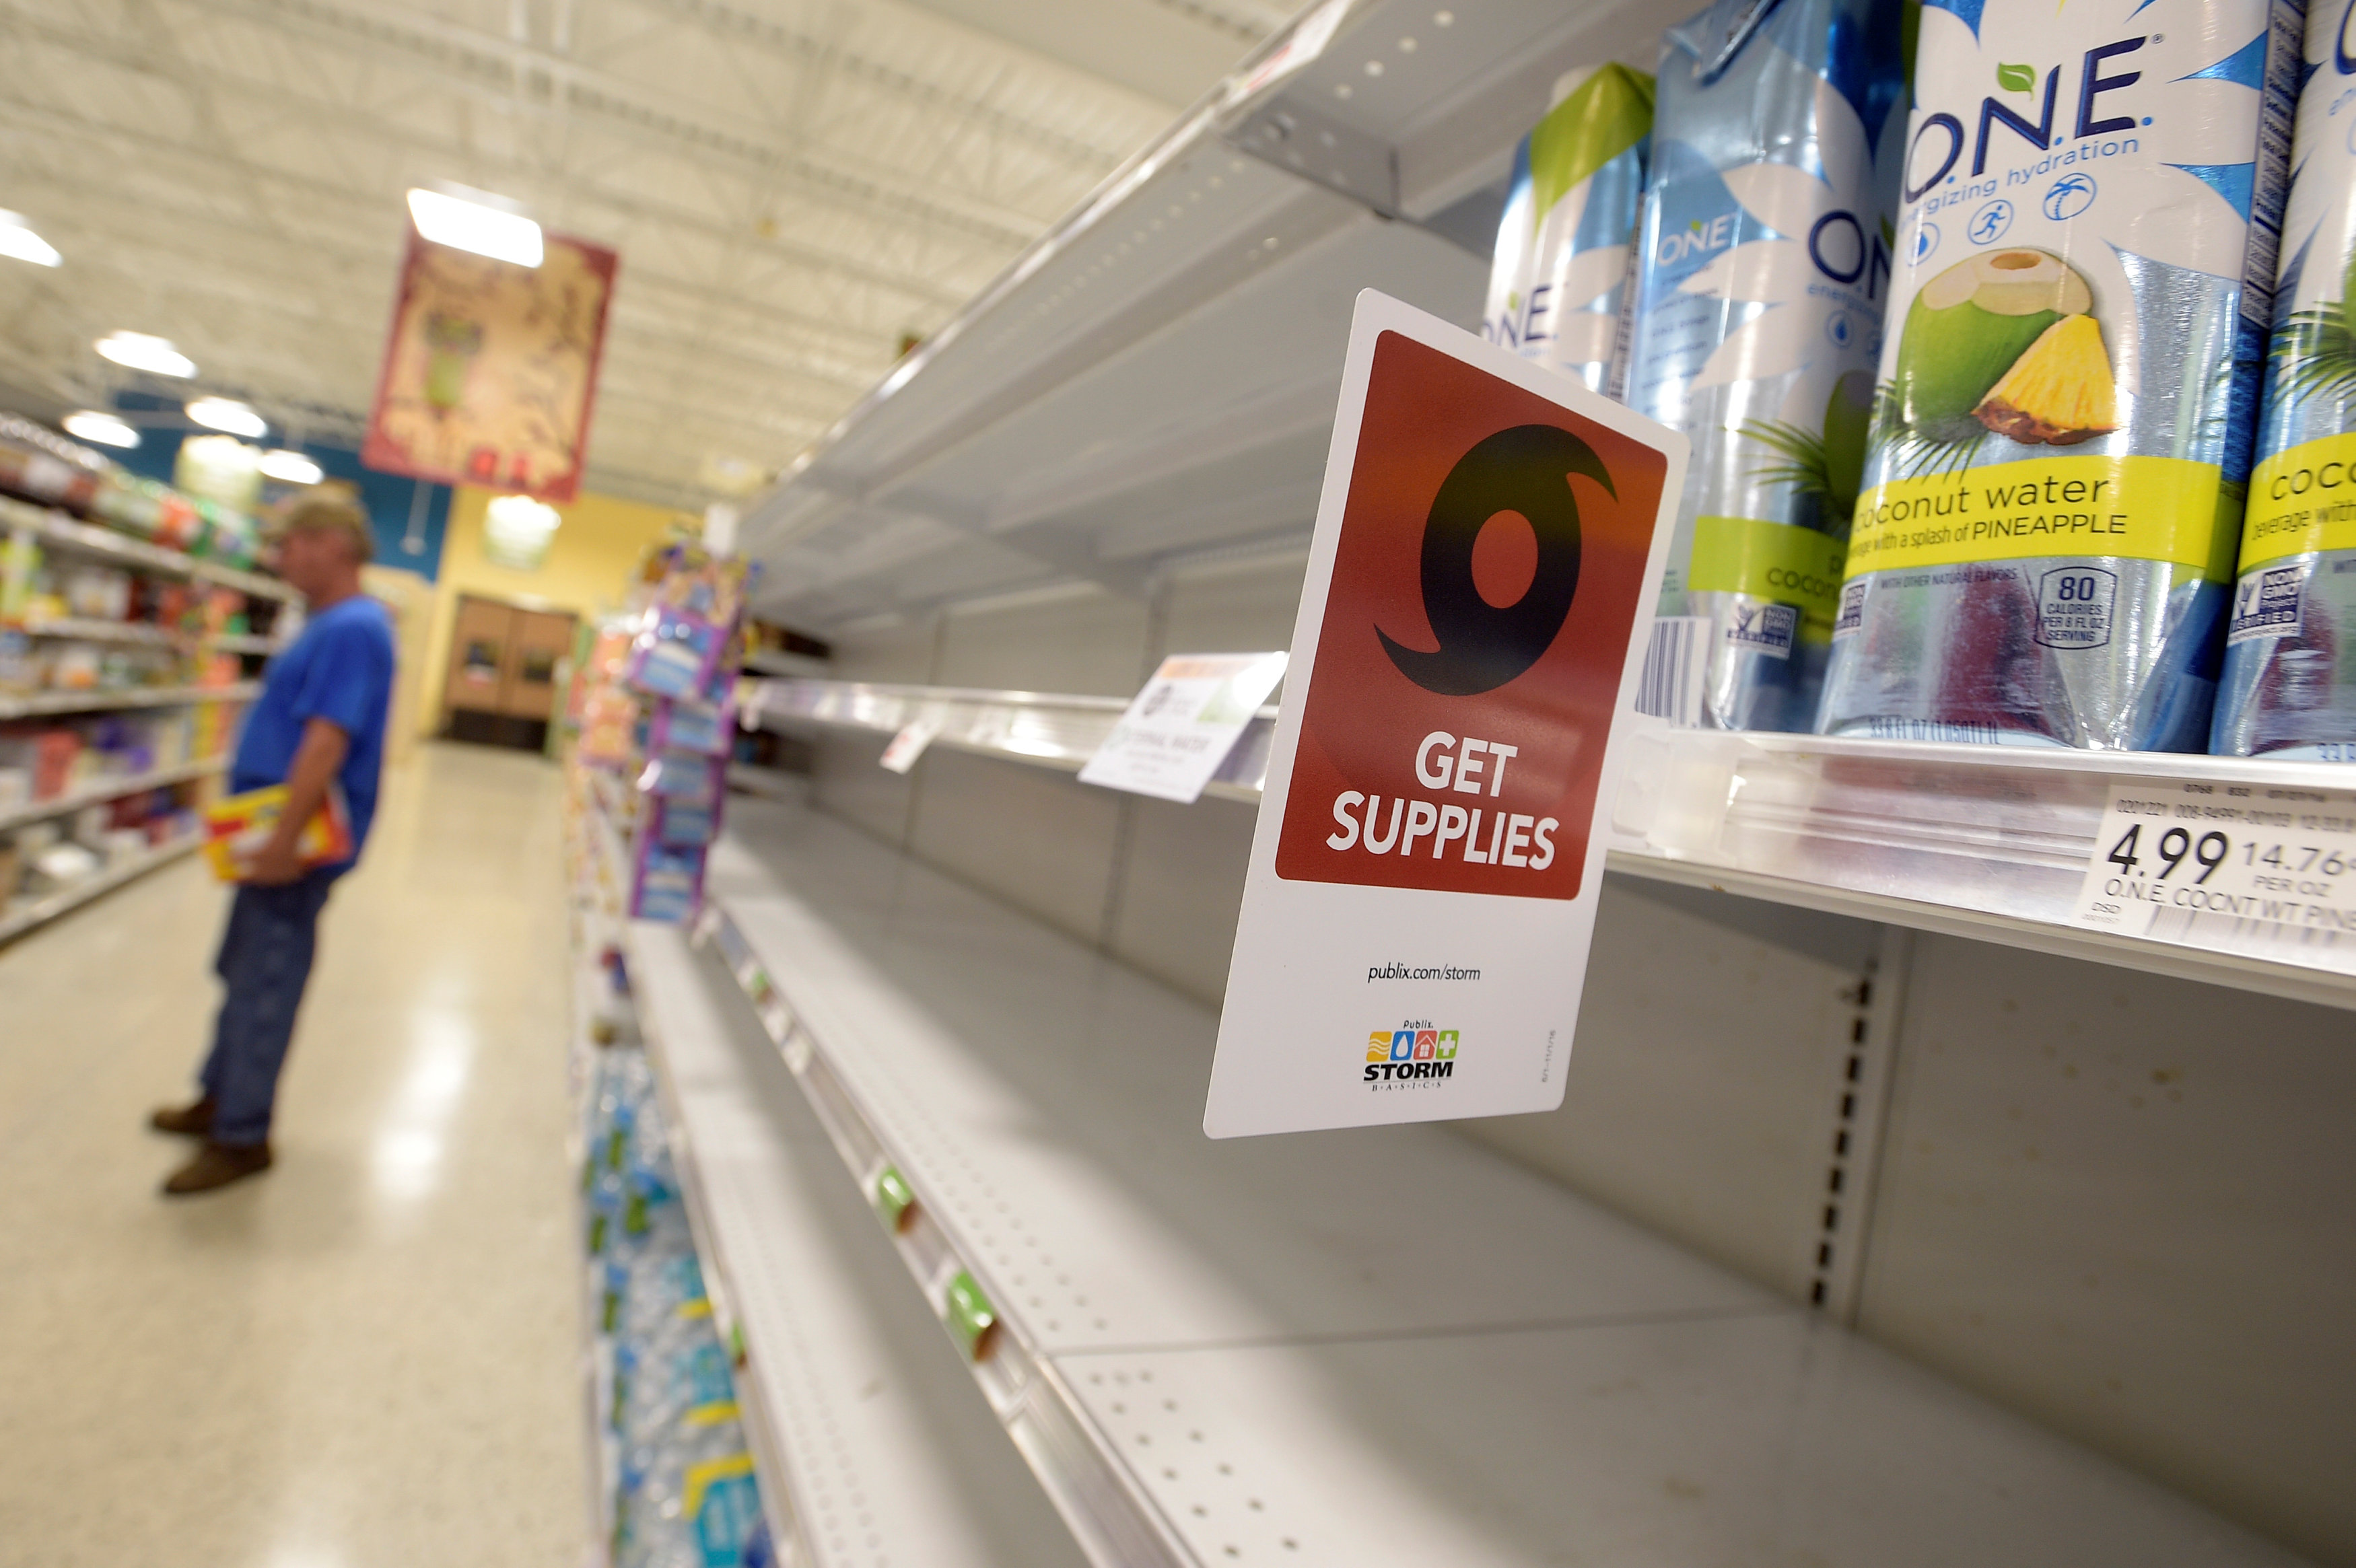 Shelves formerly holding water bottles sit empty at a supermarket before the arrival of Hurricane Matthew in South Daytona, Florida, U.S.,